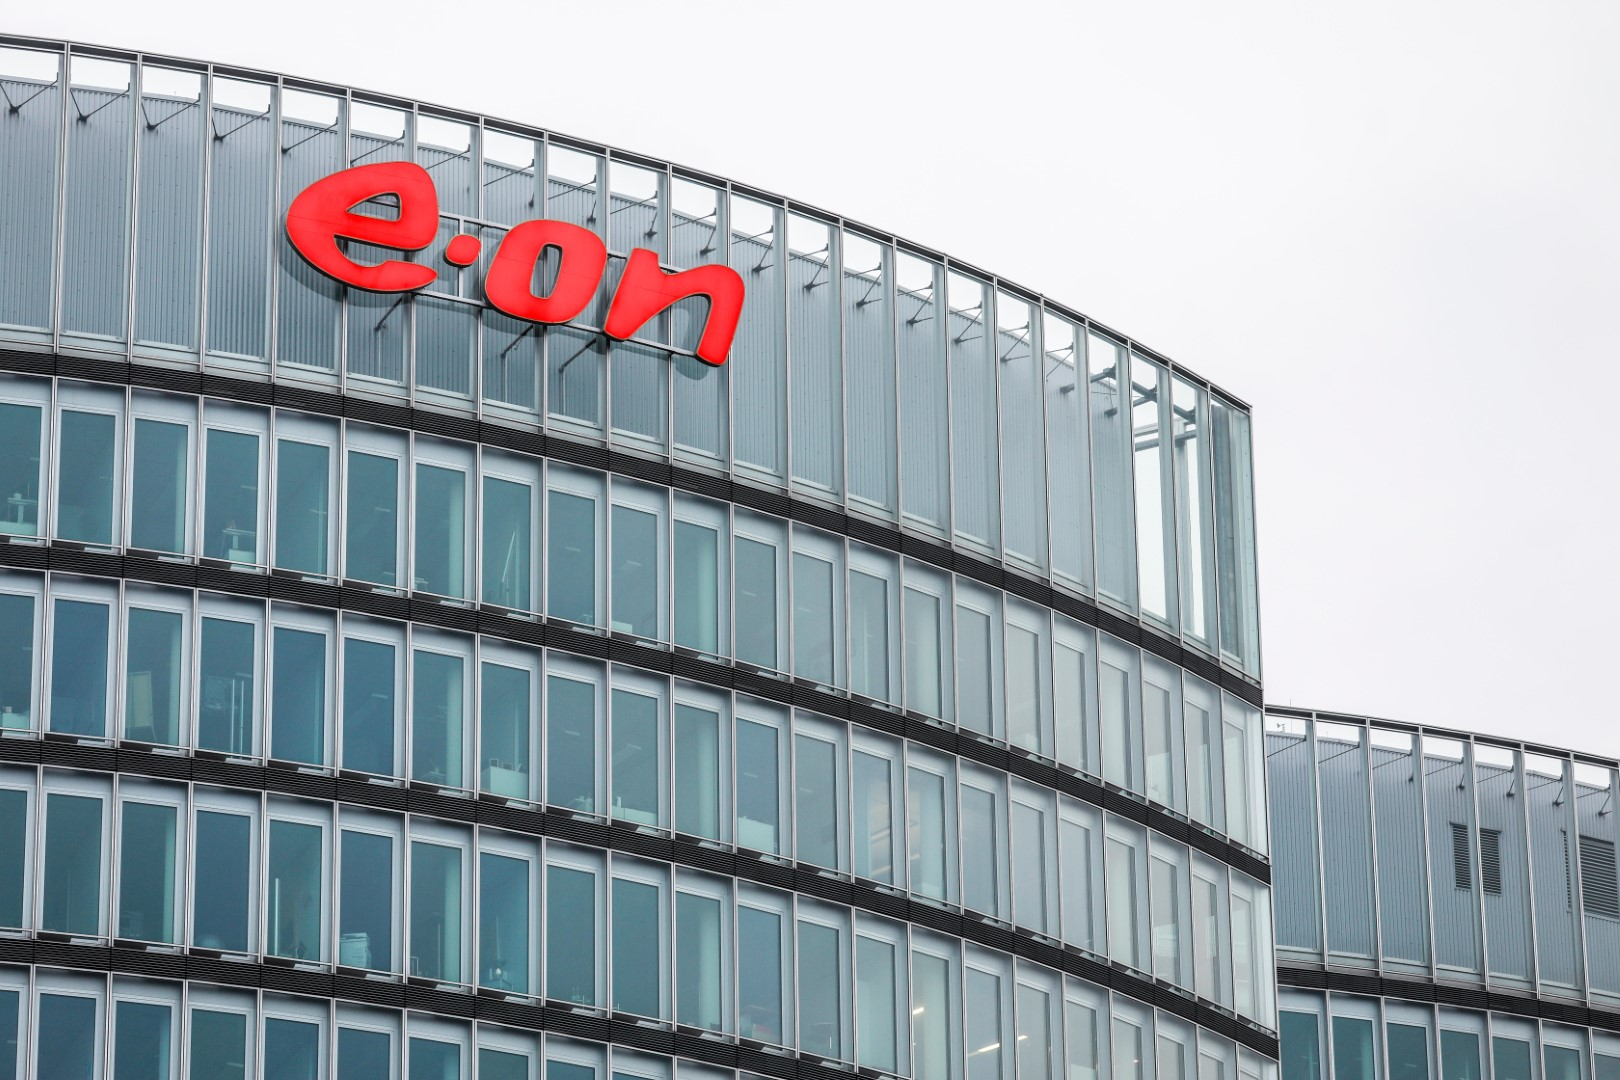 E.ON Chooses Corinex Broadband over Powerline Technology for their Smart Metering Rollout